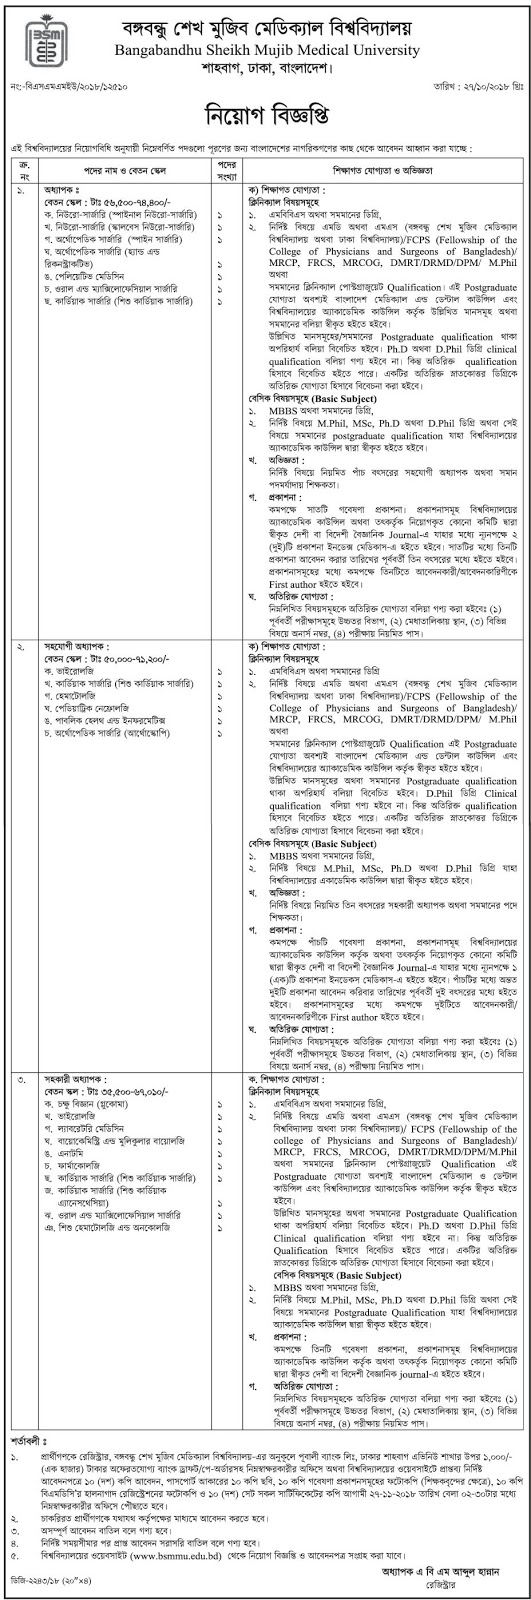 Bangabandhu Sheikh Mujib Medical University (BSMMU) Job Circular 2018 Job